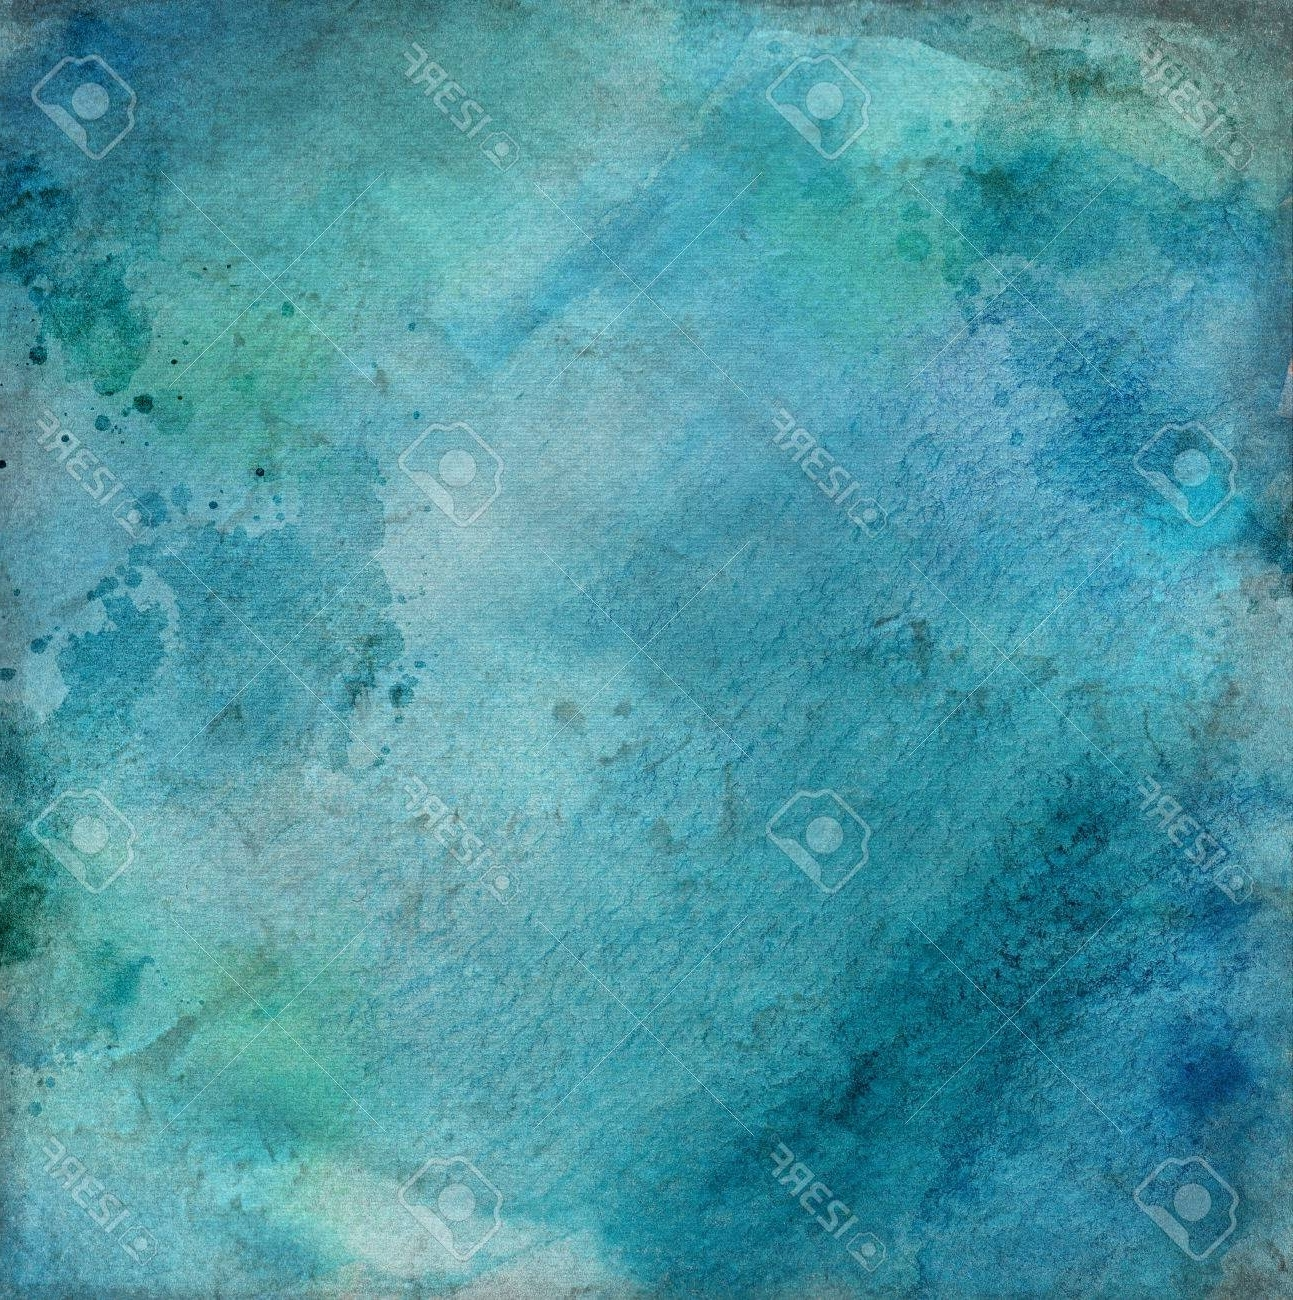 Turquoise Wall Art Pertaining To Most Recent Abstract Grunge Decorative Navy Blue Dark Stucco Wall (View 14 of 15)